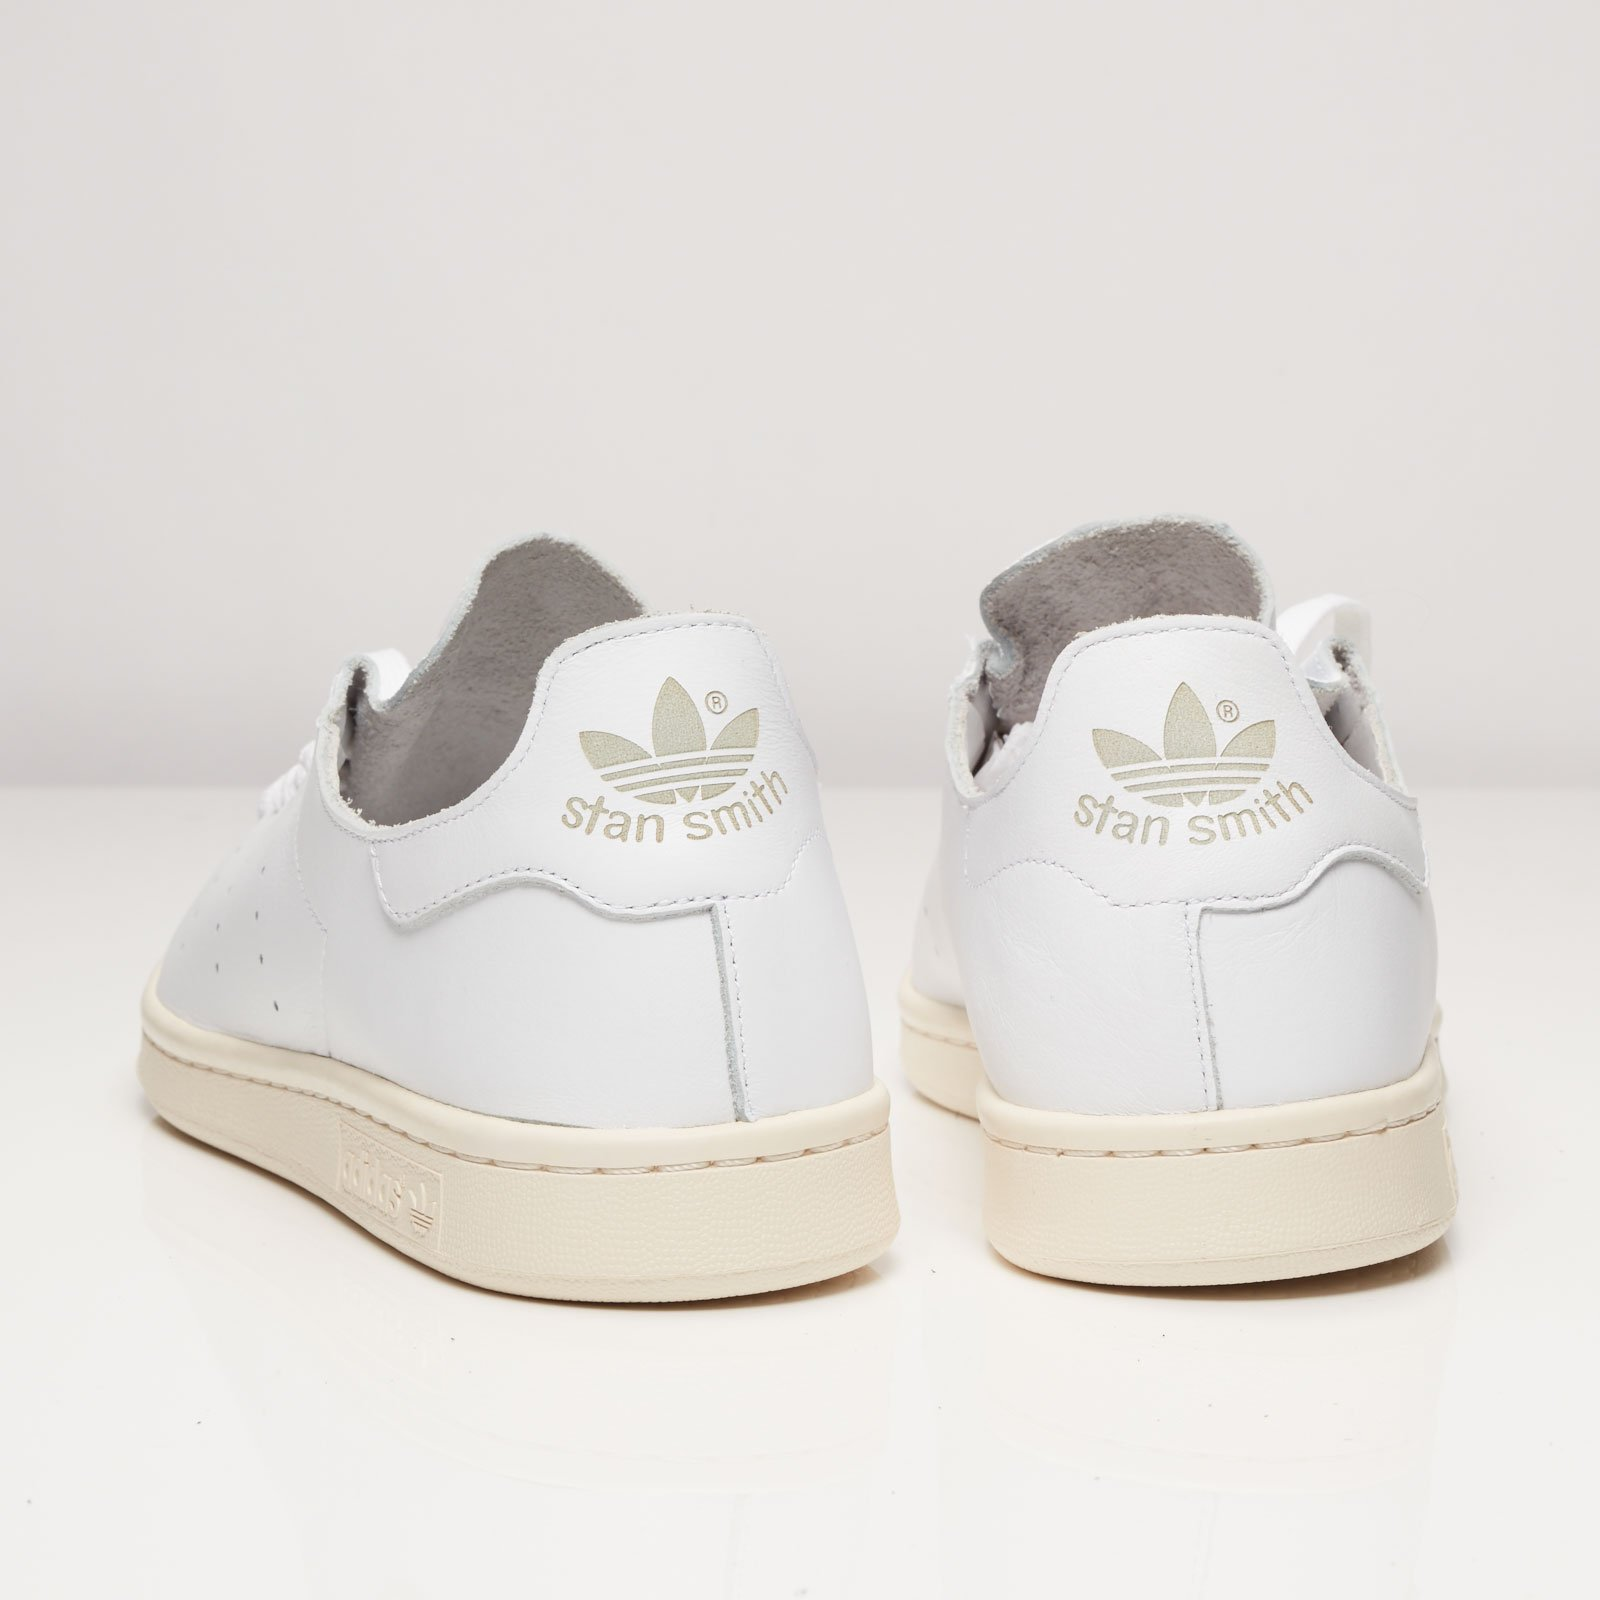 France Pas Cher adidas stan smith leather sock Vente en